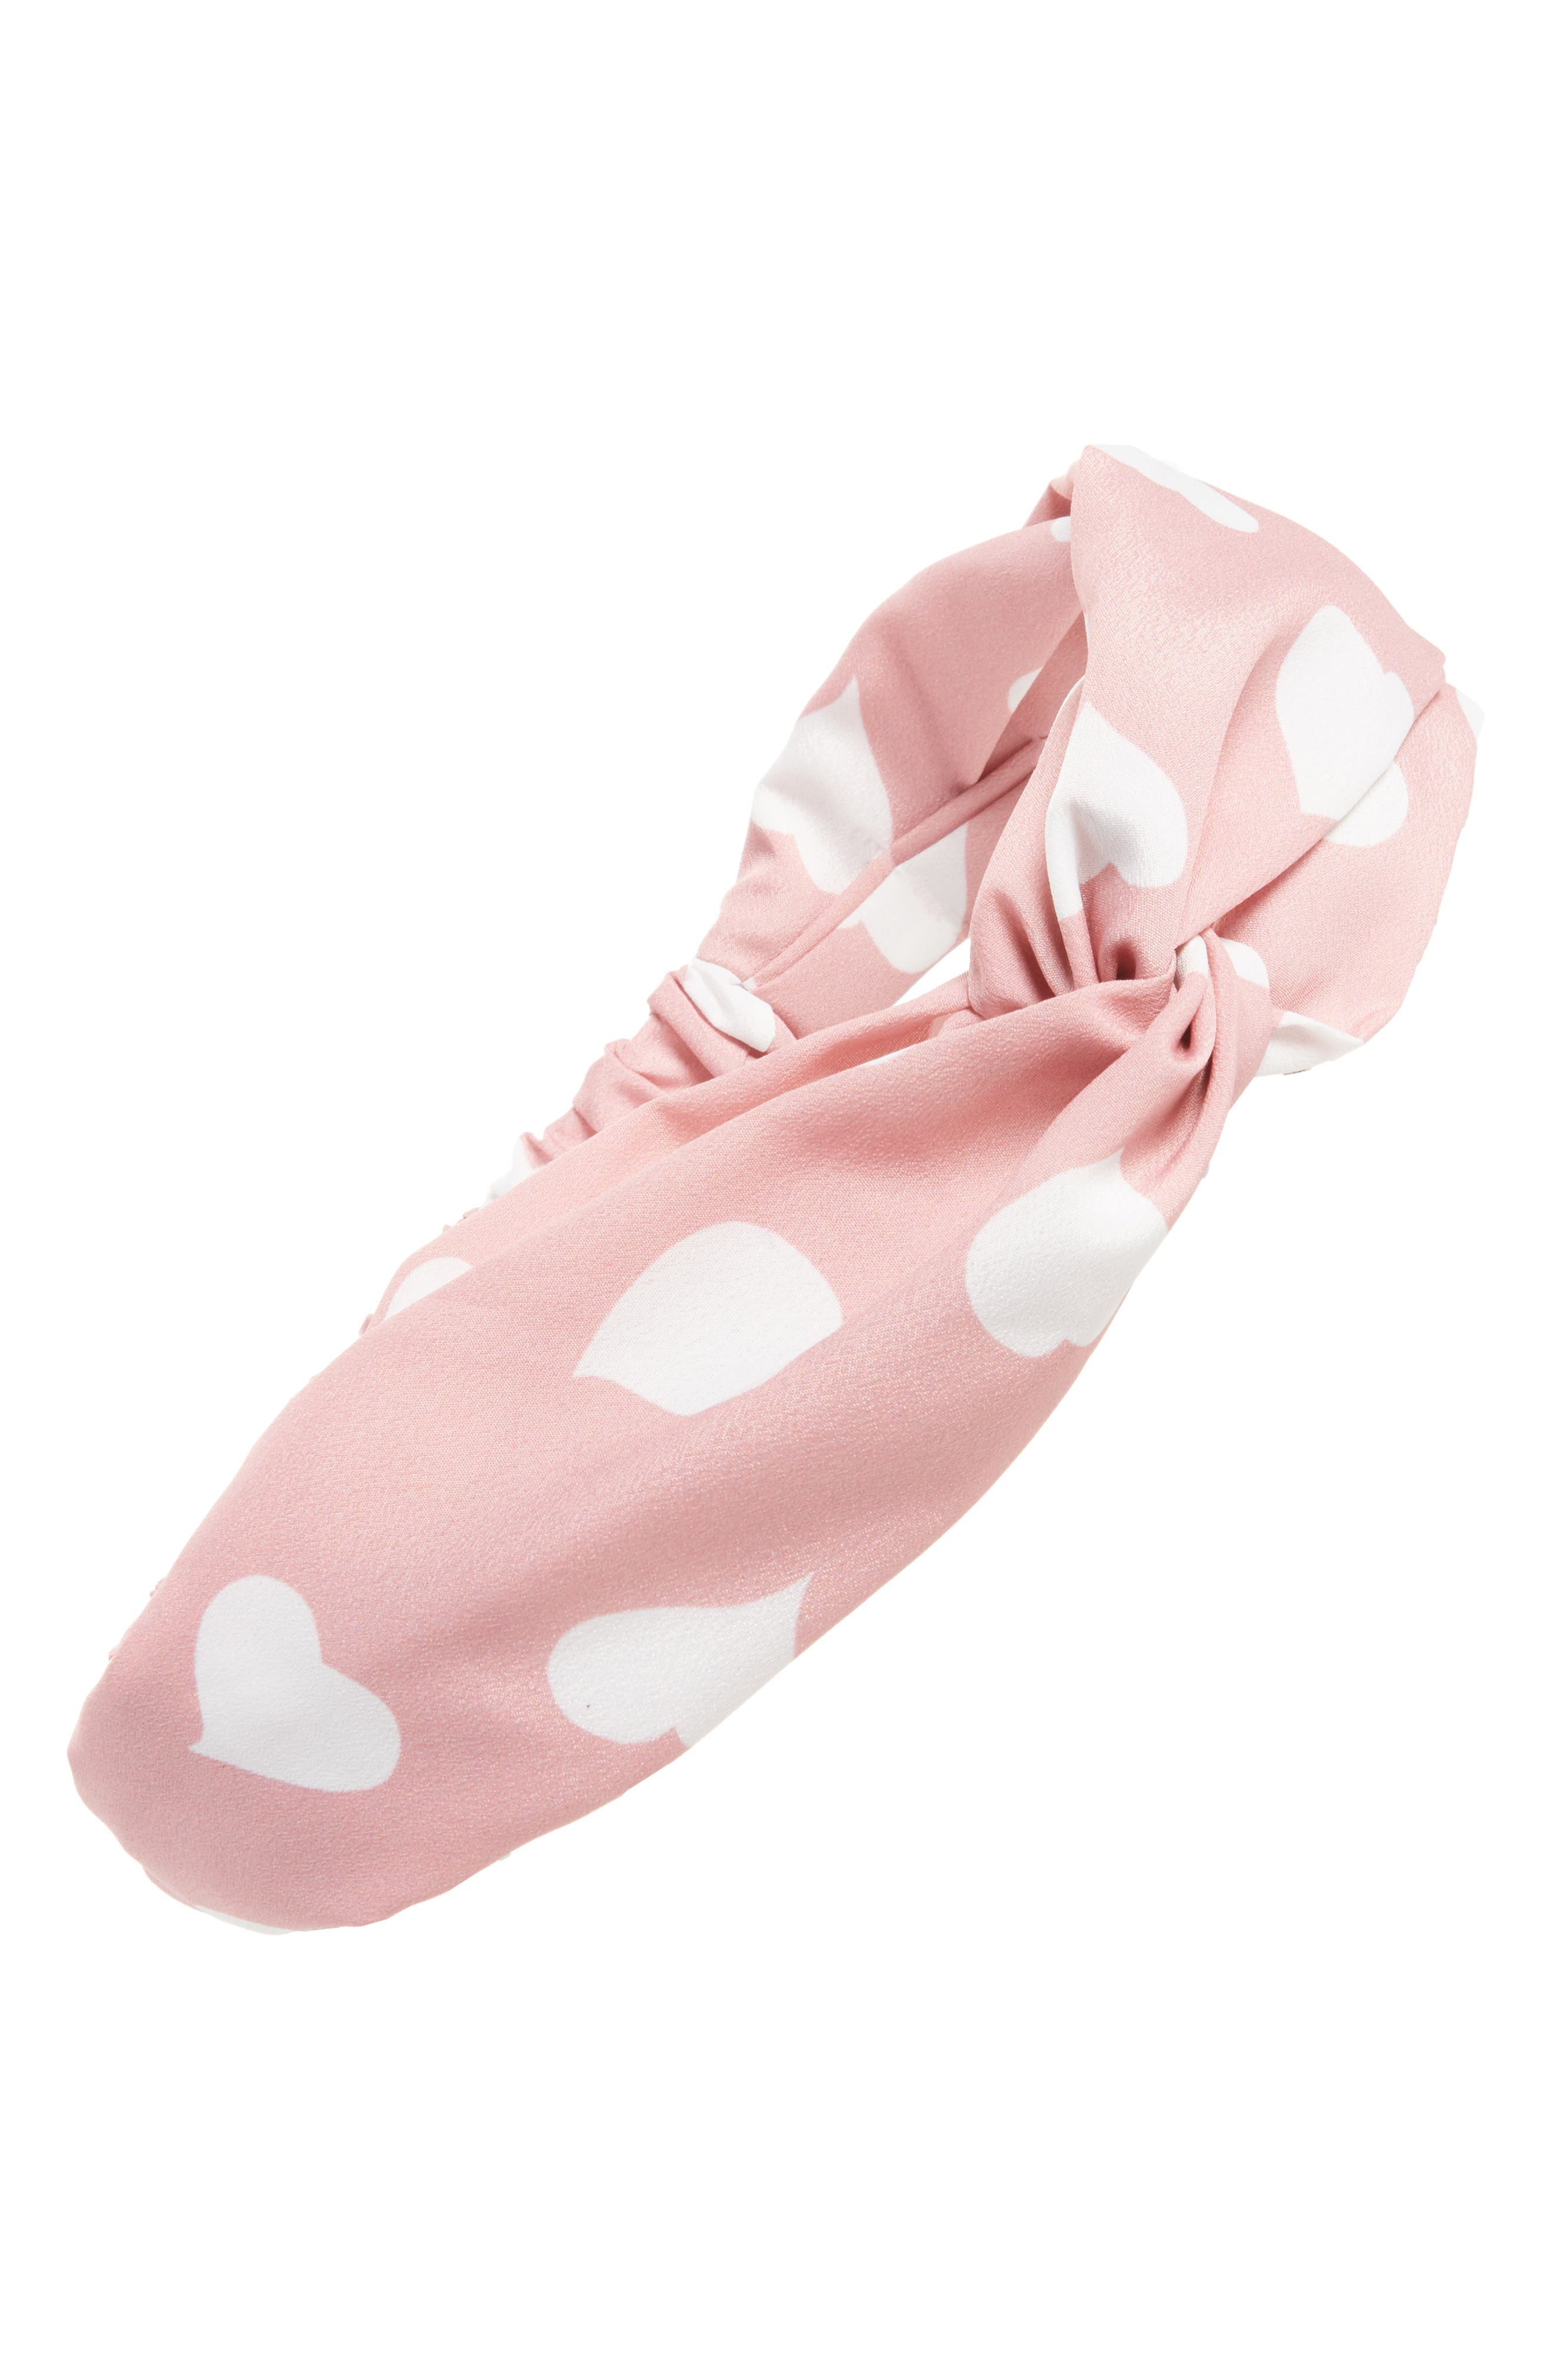 Heart Dots Twist Head Wrap,                         Main,                         color, Pink/ White